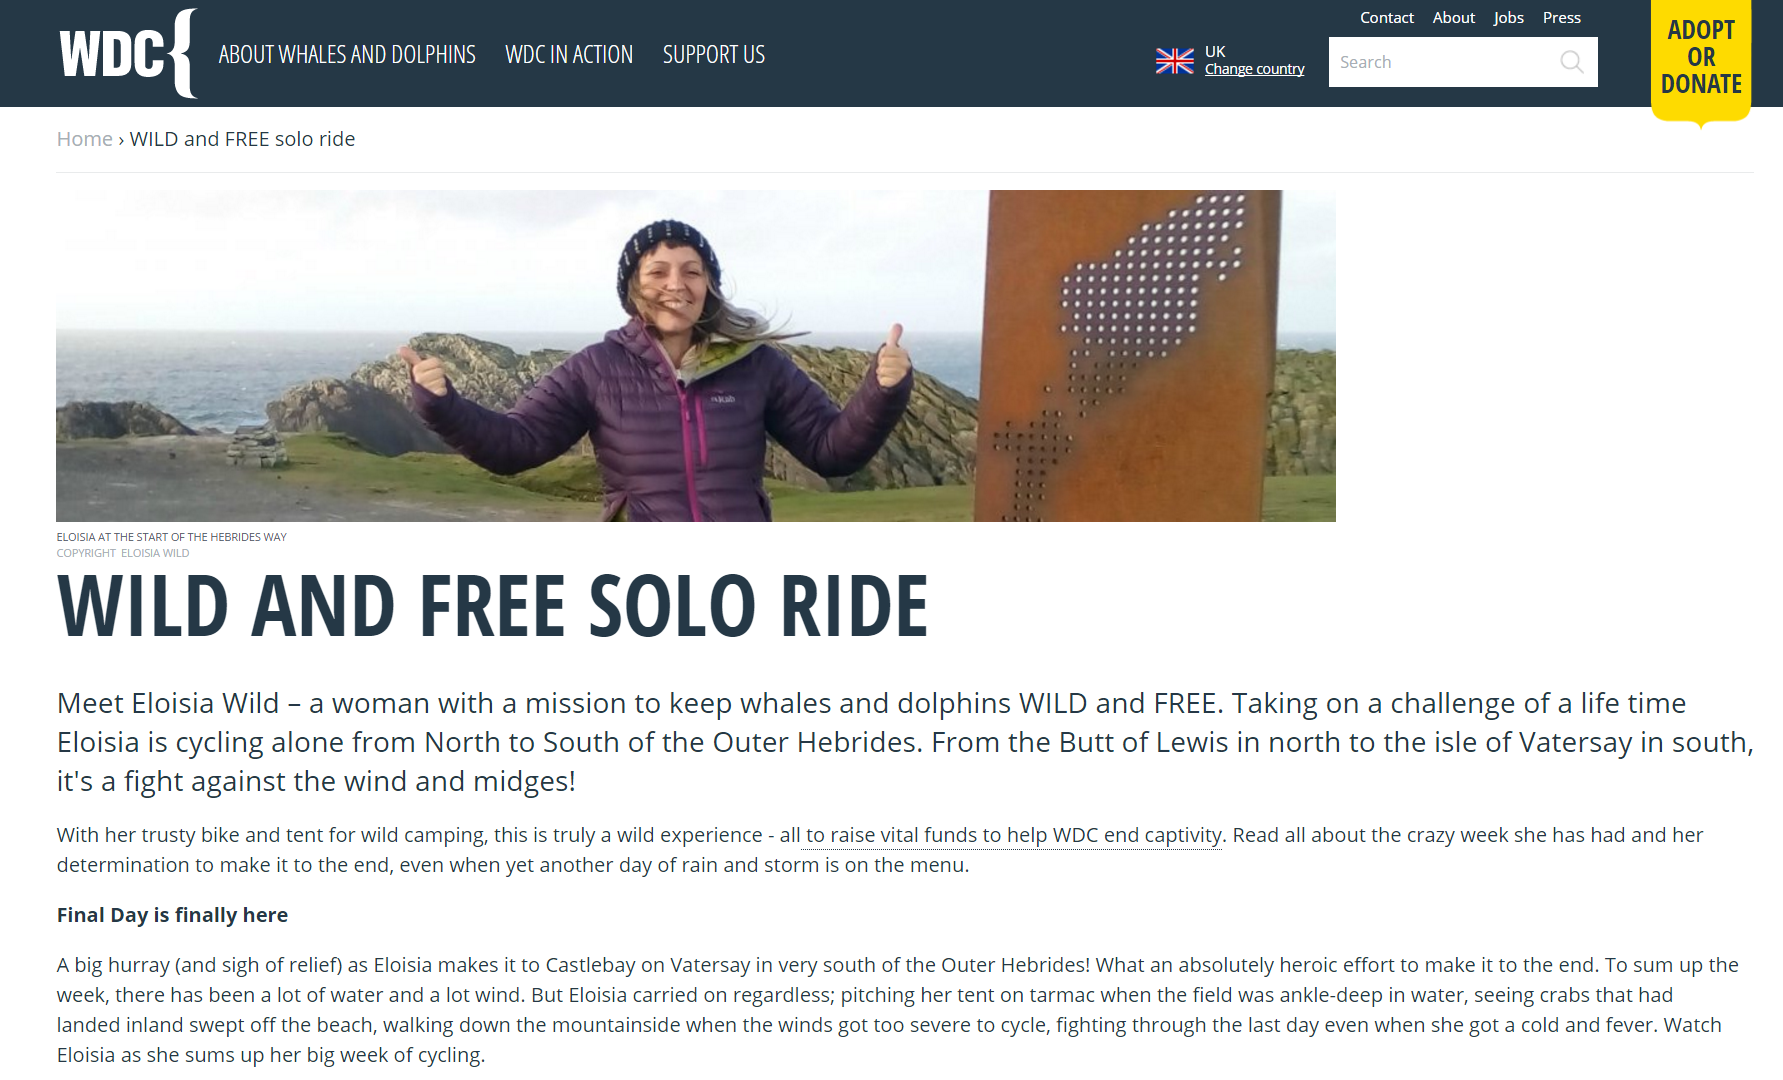 WILD & FREE SOLO CYCLE ONLINE  WHALE AND DOPLHIN CONSERVATION